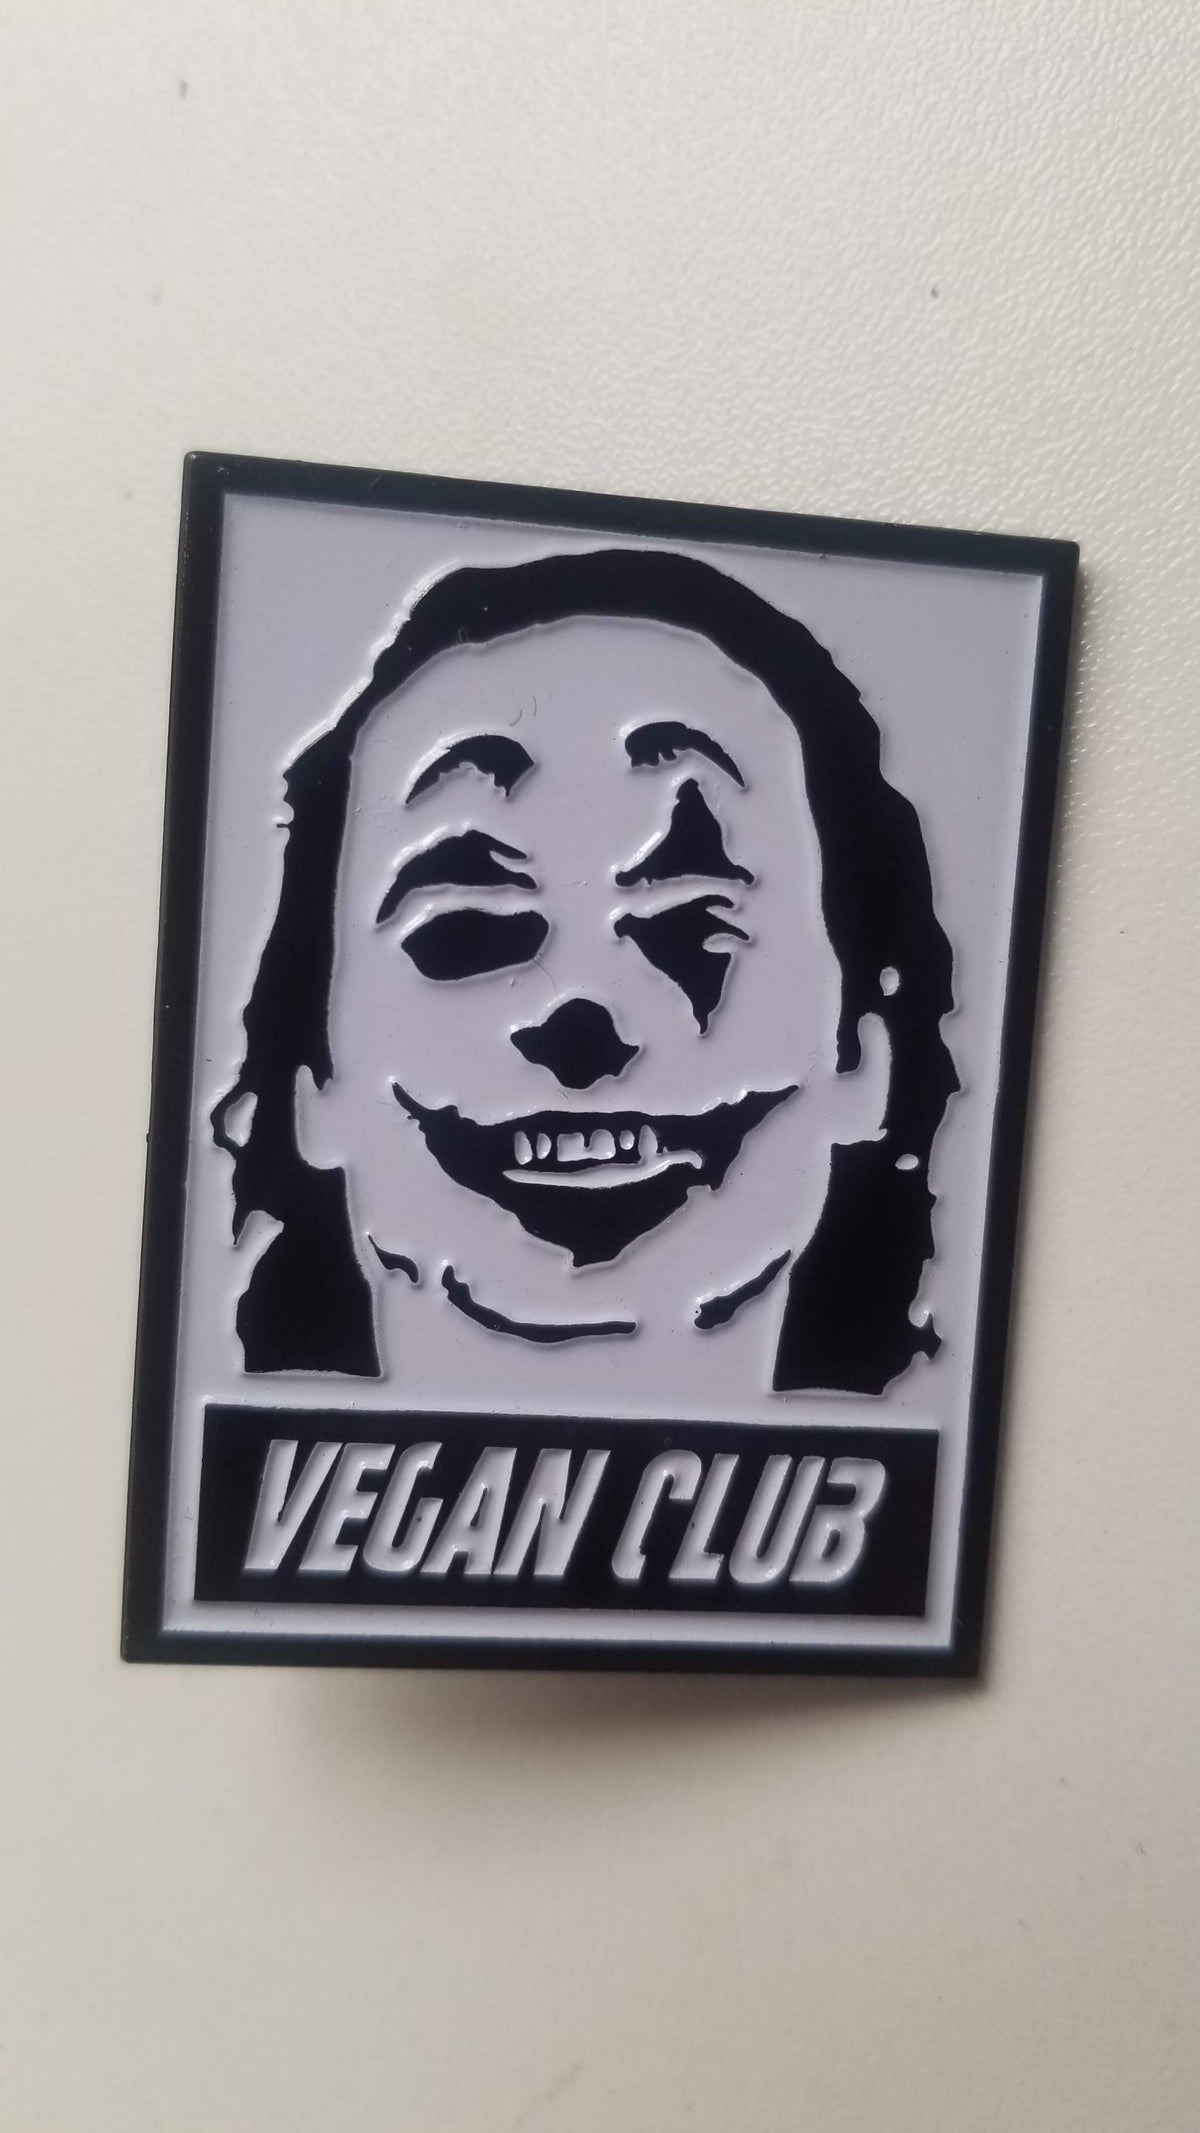 Vegan Club Pin featuring the Joker